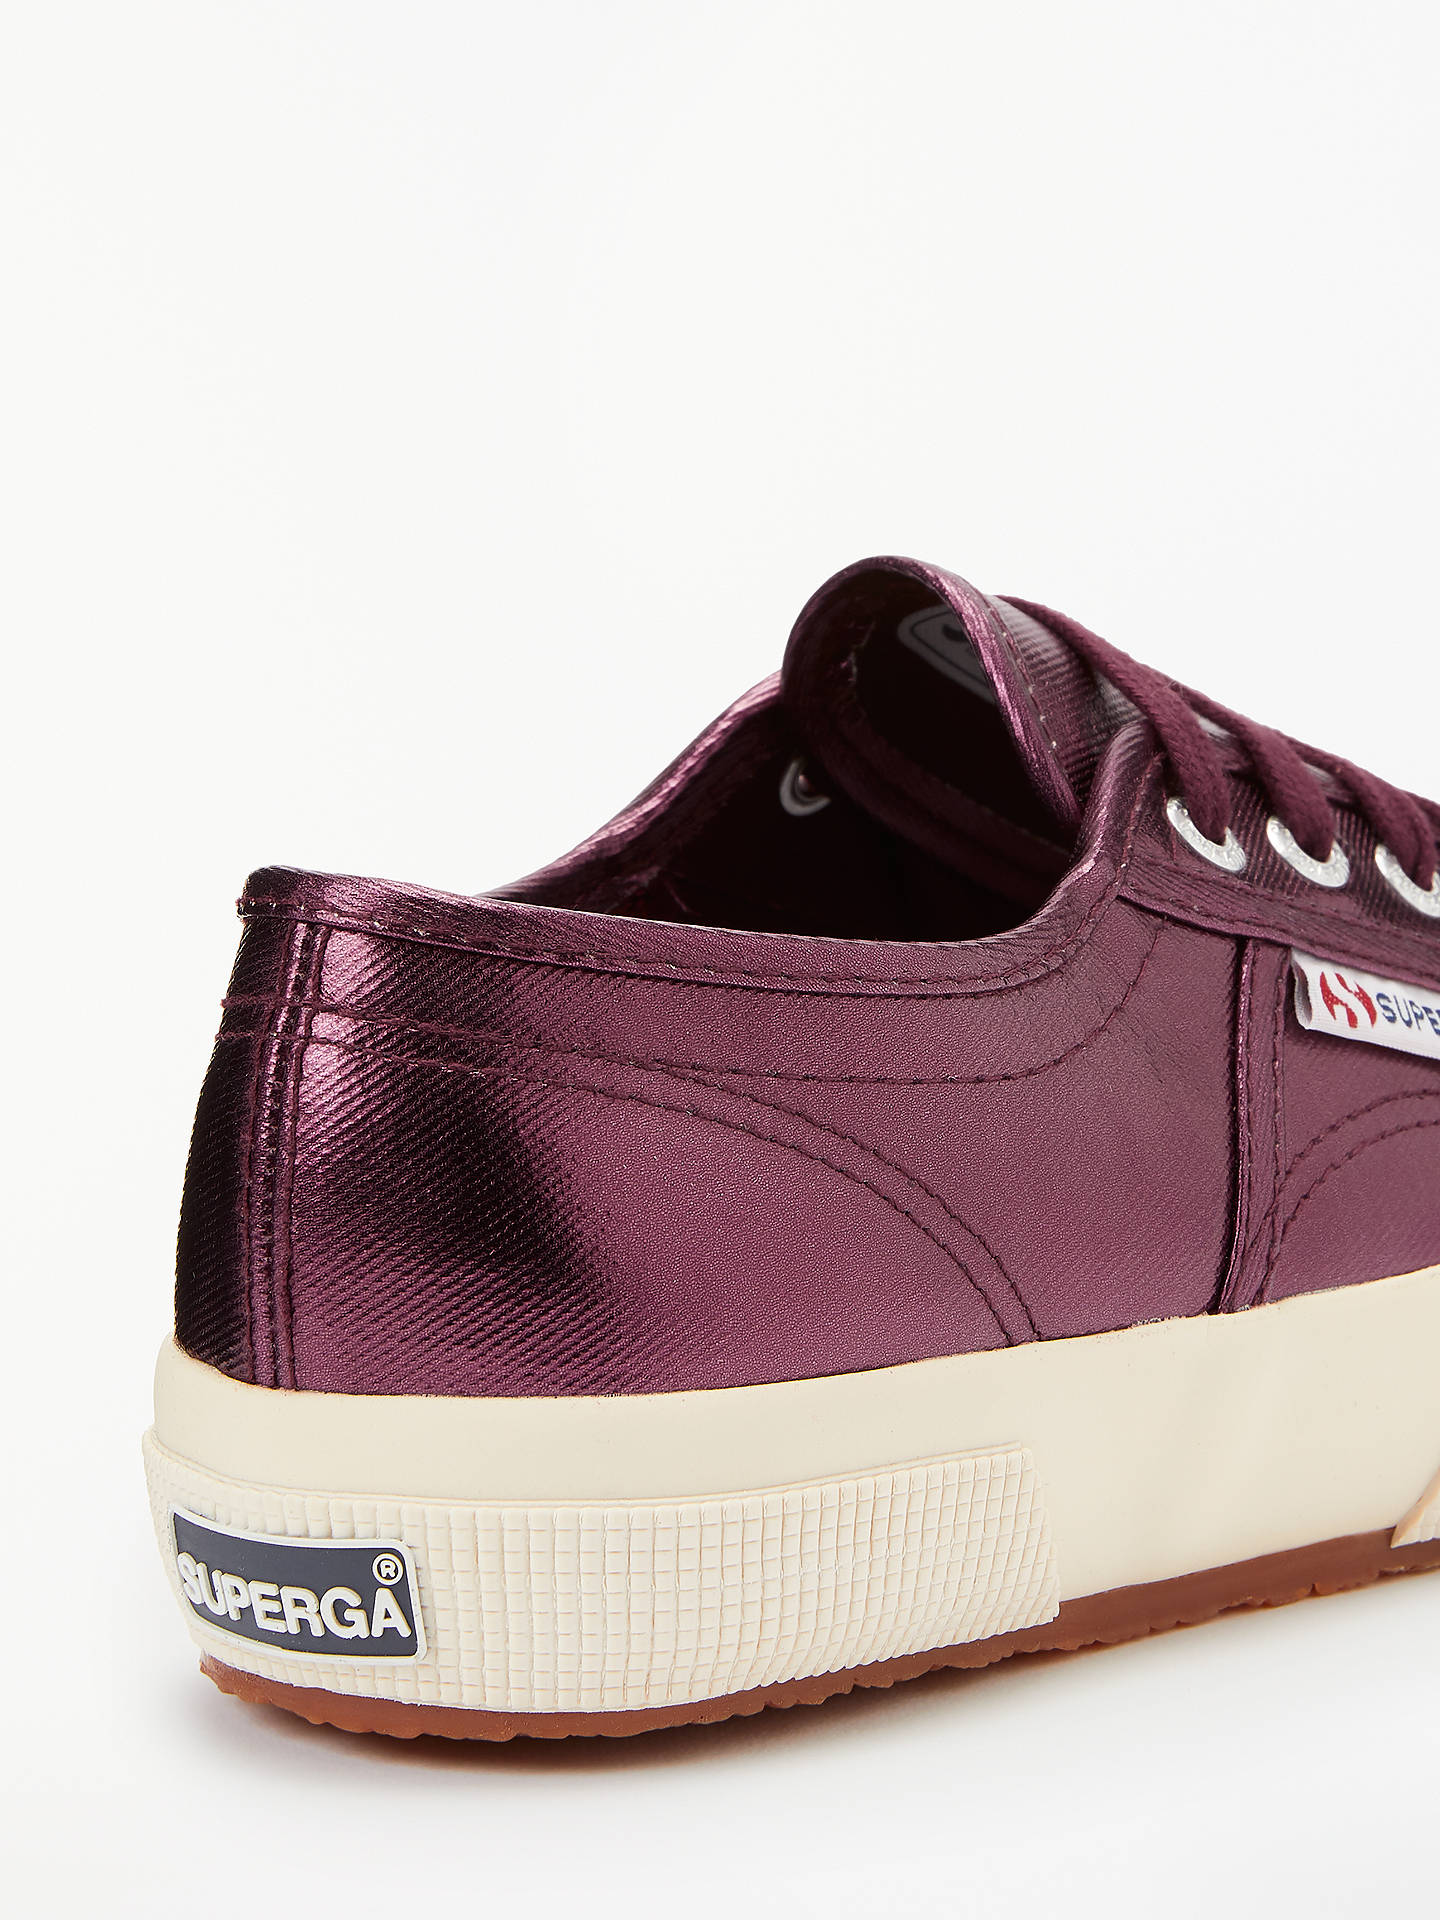 Buy Superga 2750 Cotu Classic Trainer Plimsolls, Metallic Red, 4 Online at johnlewis.com